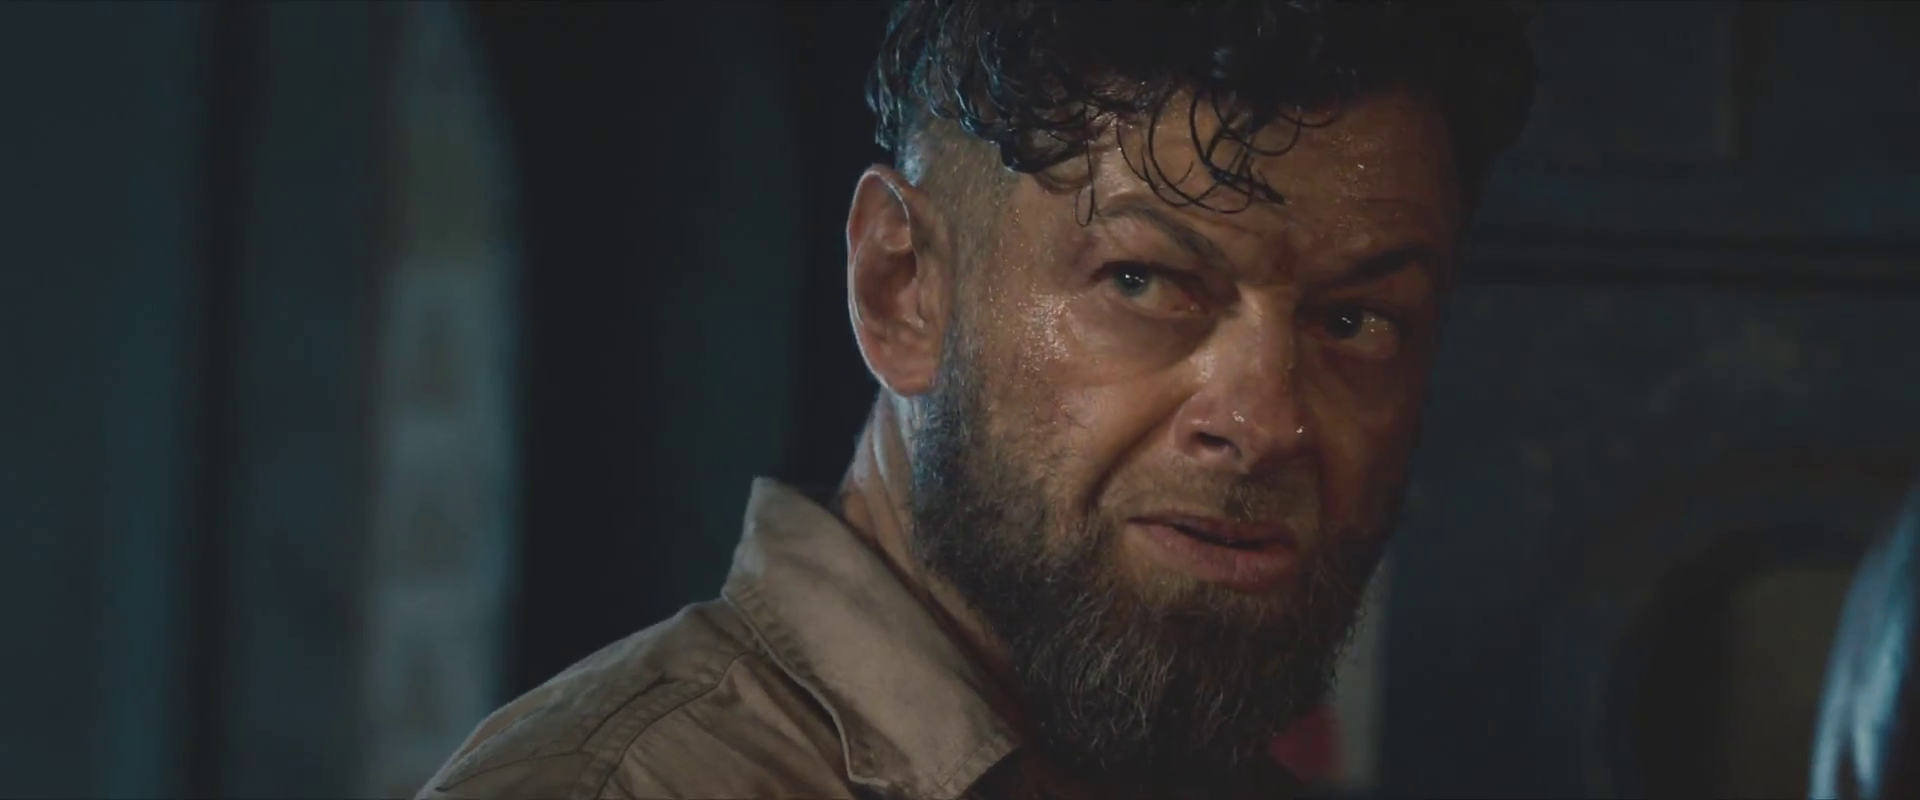 avengers-age-of-ultron-trailer-screengrab-20-andy-serkis.png